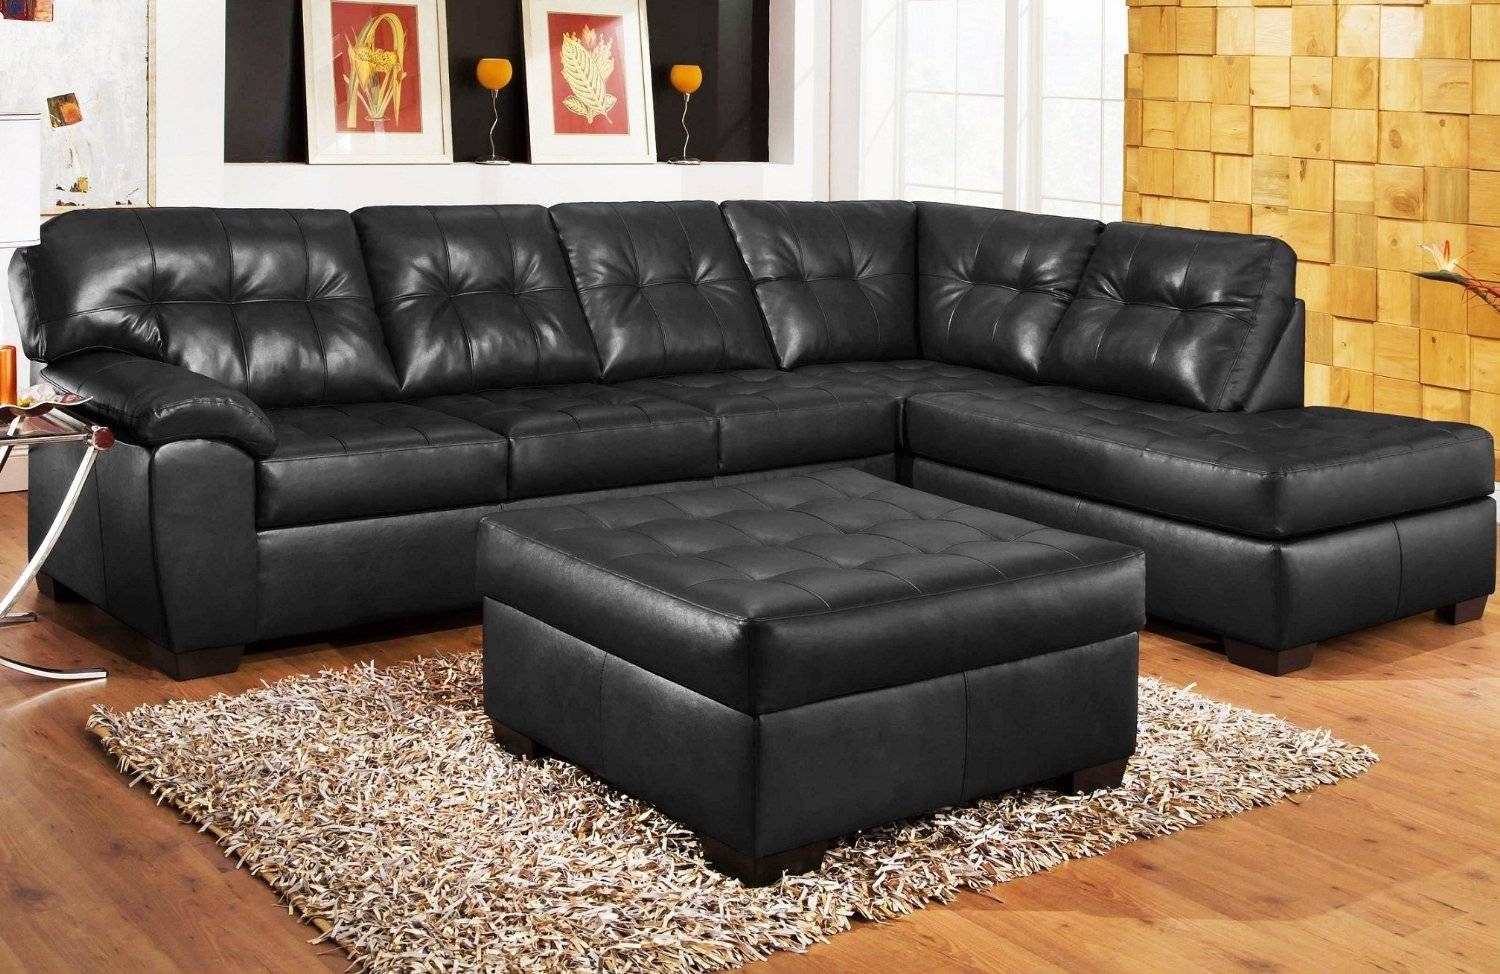 Interior: Stunning Micro Cheap Leather Sectionals For Living Room within Black Sectional Sofa For Cheap (Image 15 of 30)